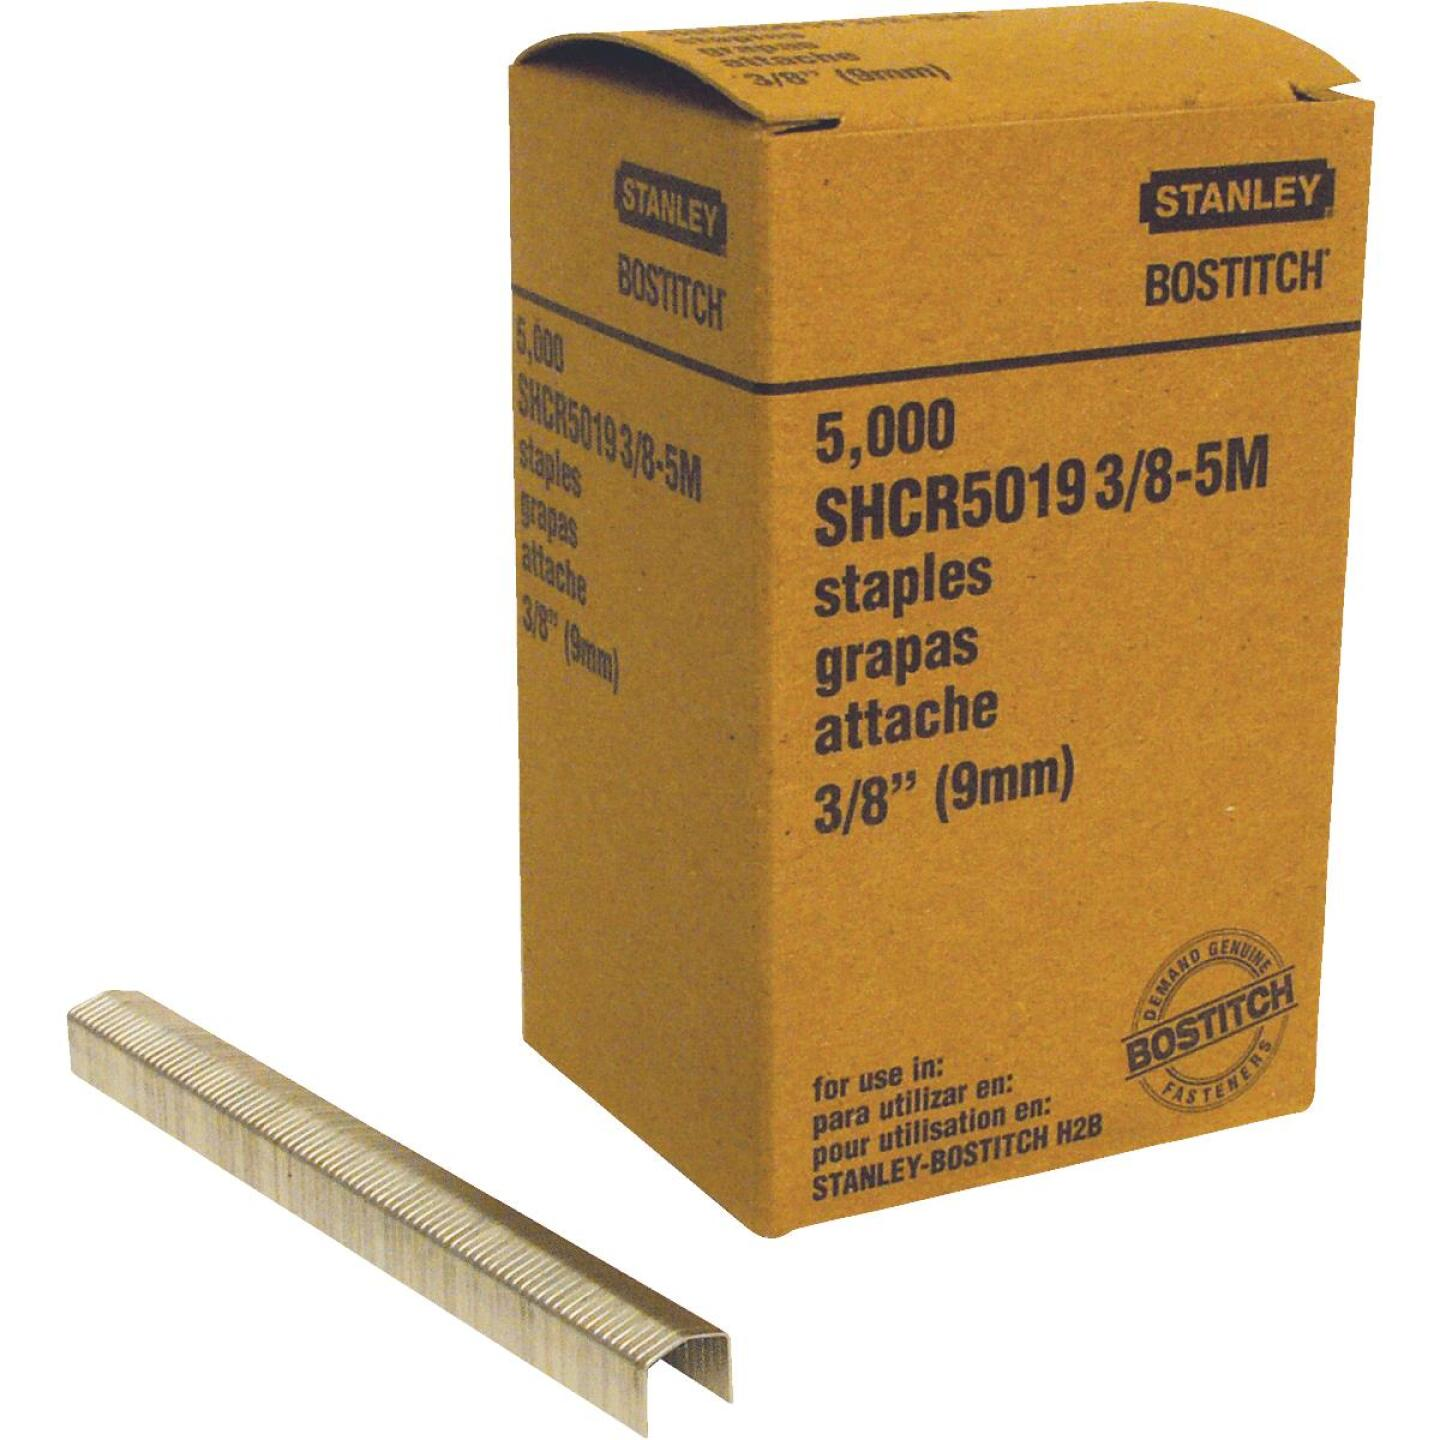 Bostitch Powercrown H2B Hammer Tacker Staple, 3/8 In. (5000-Pack) Image 1